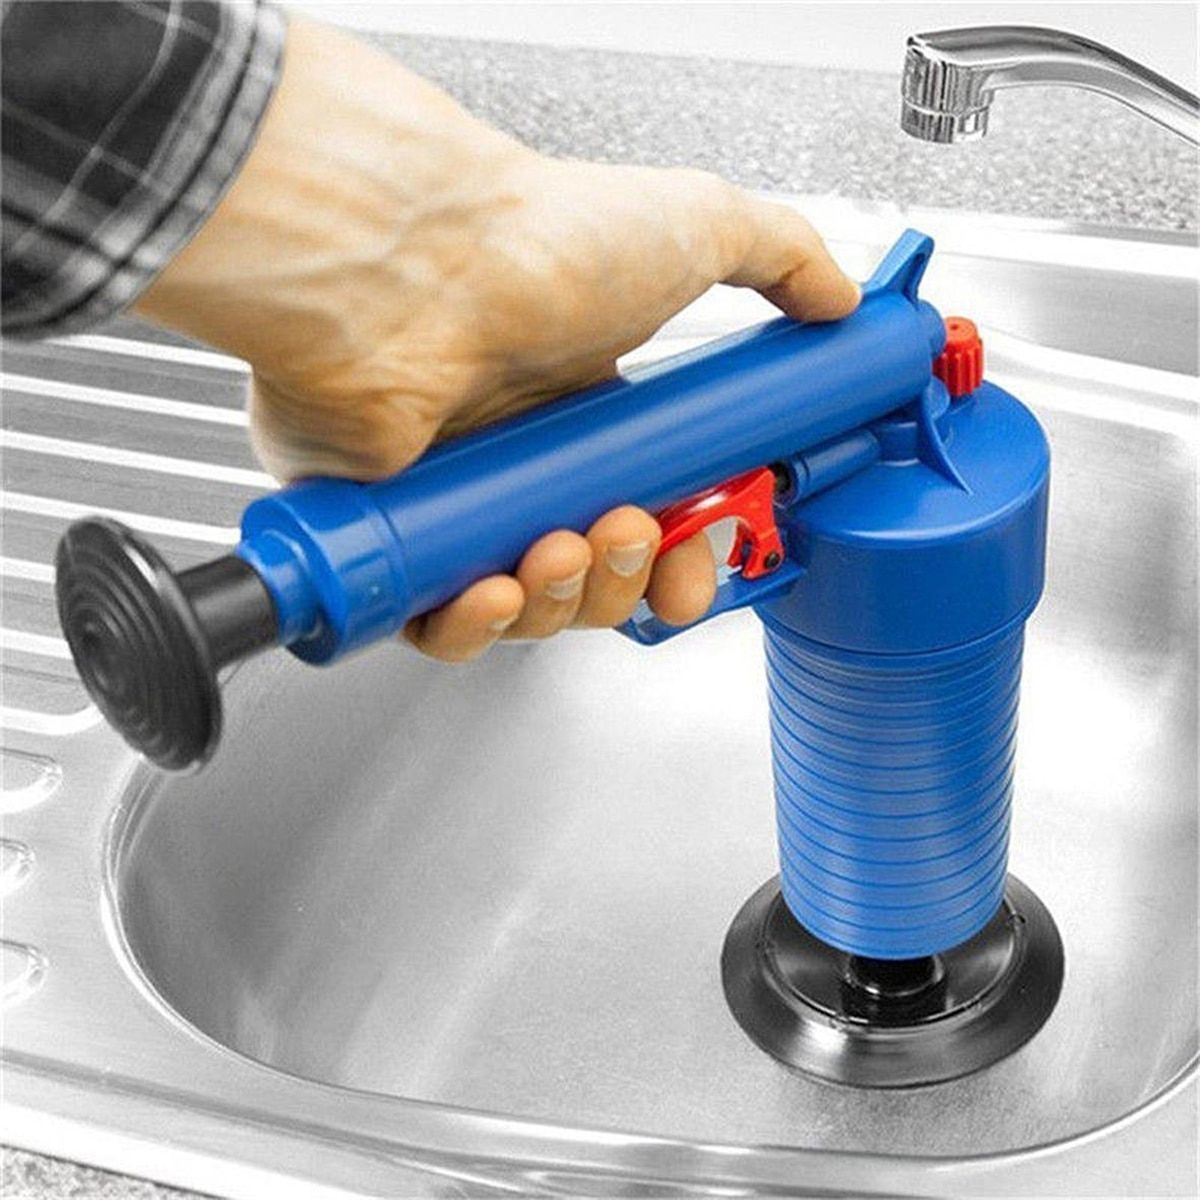 Air Pressure Drain Cleaner <font><b>Sewer</b></font> Cleaning Brush Kitchen Bathroom Toilet Dredge Plunger Basin Pipeline Clogged Remover Tool Set